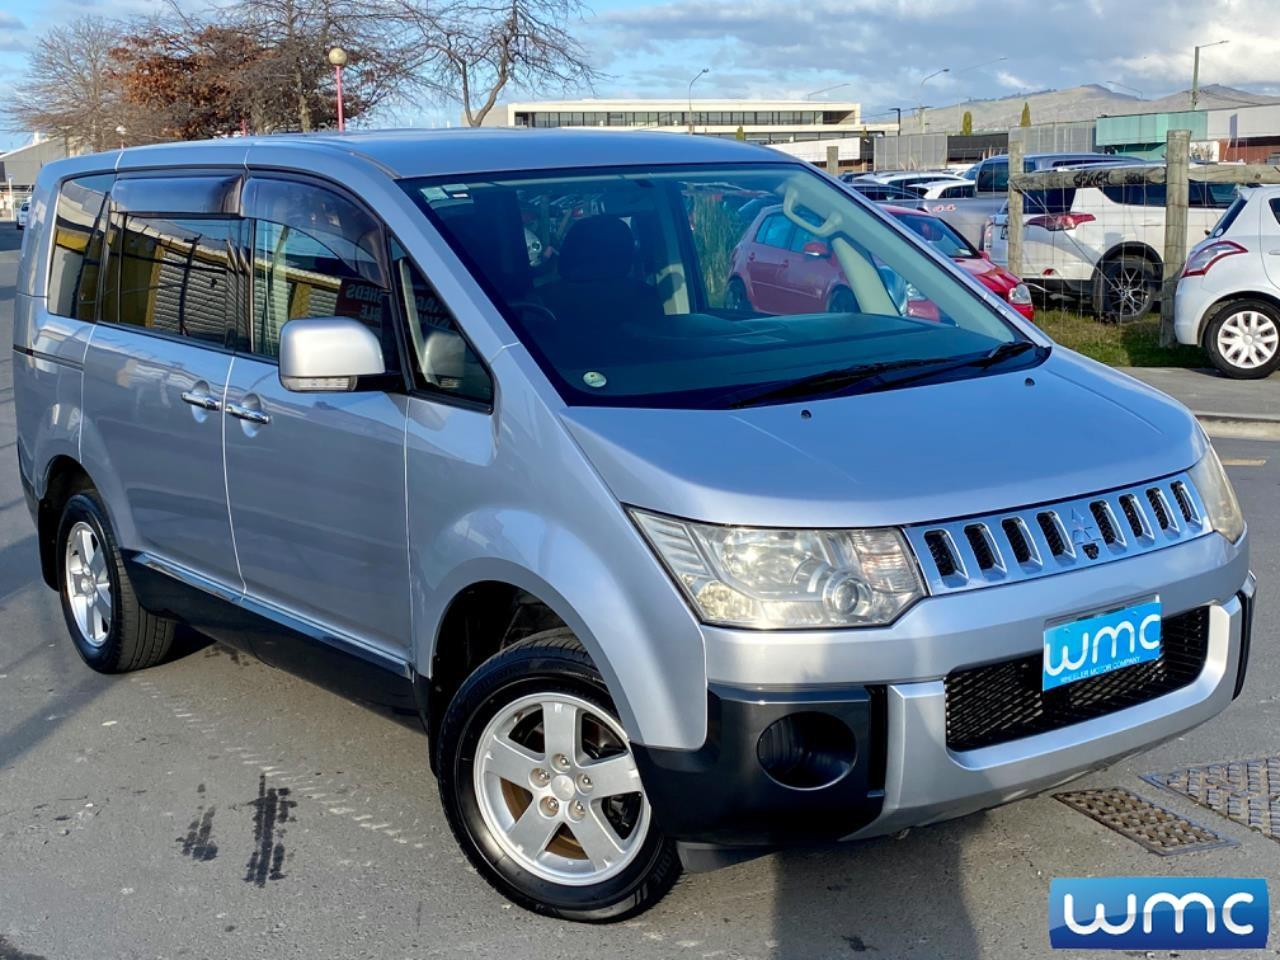 image-0, 2009 Mitsubishi Delica D:5 Exceed 7-Seater at Christchurch